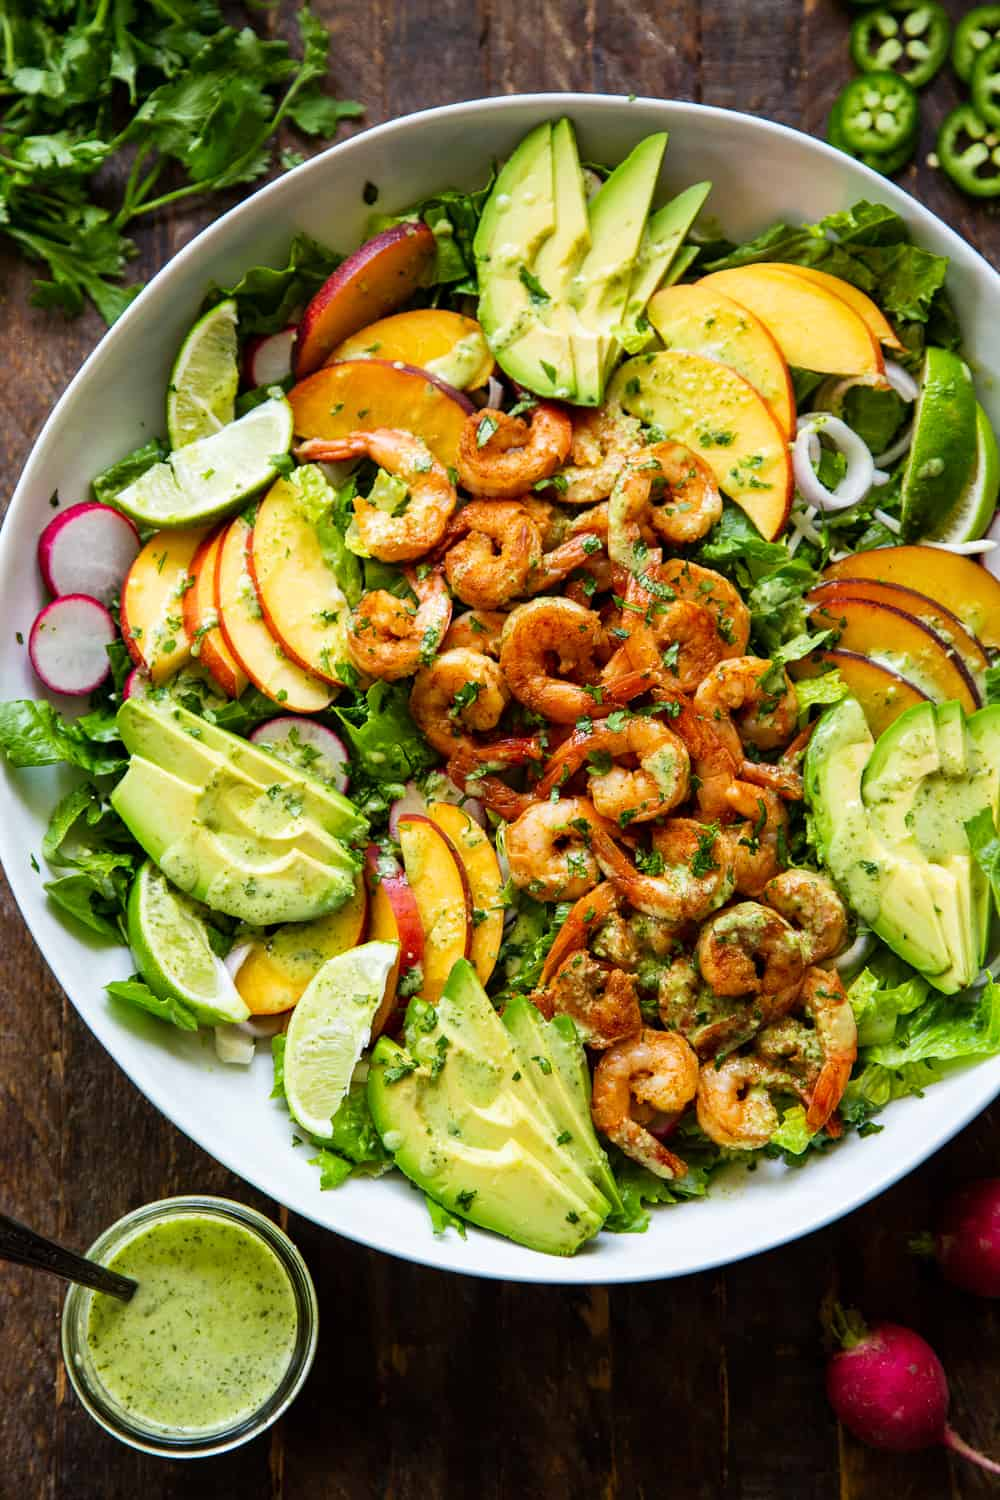 This healthy salad has tons of savory and sweet flavors plus spice! Spicy chipotle shrimp over a fresh summer salad with the most delicious cilantro dressing! Serve it for lunch or dinner over the summer or for your next BBQ. It's easy to throw together and paleo friendly with a Whole30 option. #paleo #cleaneating #shrimp #whole30